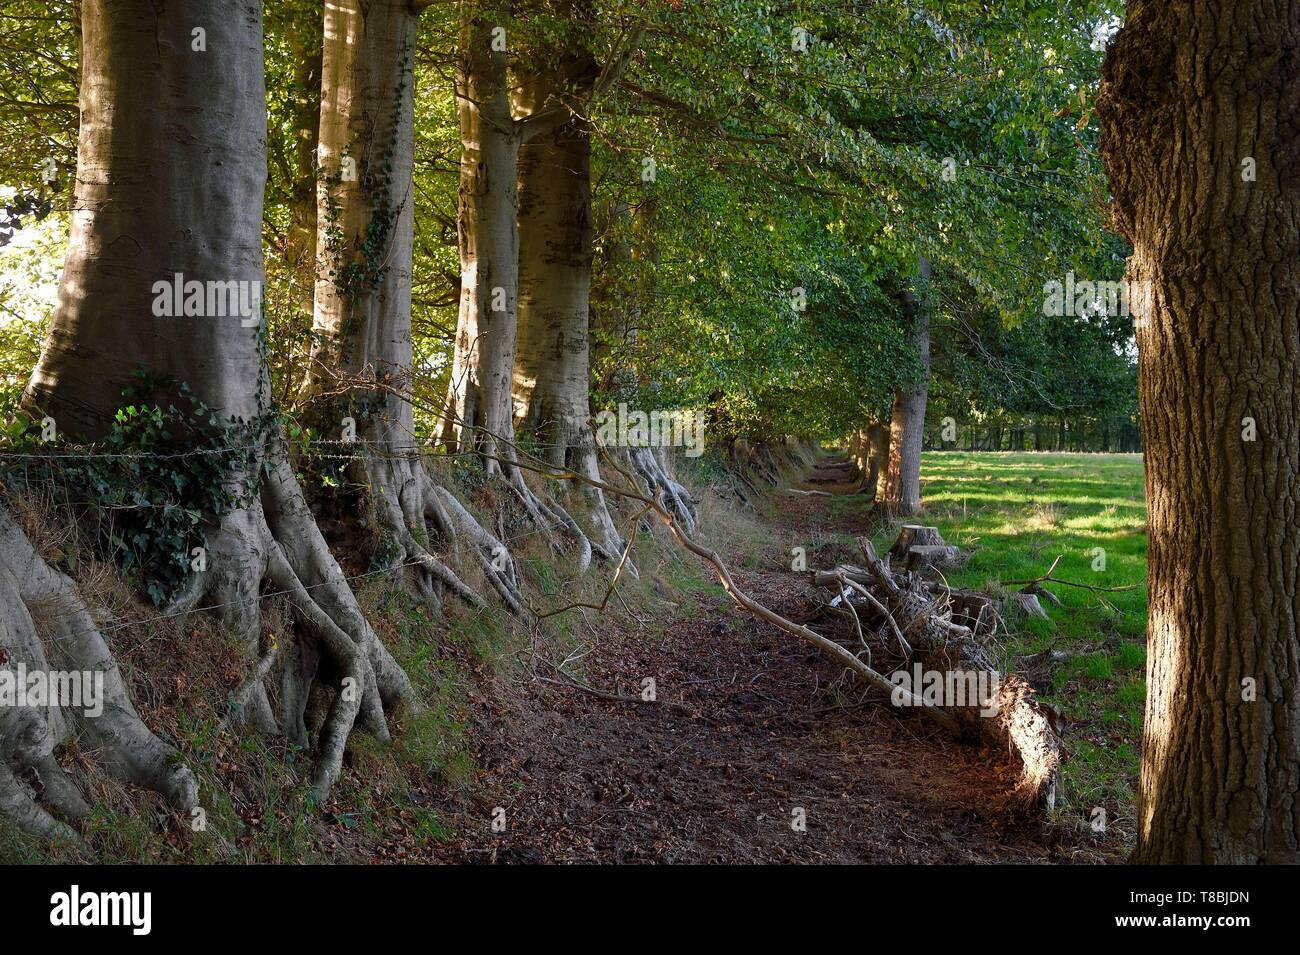 France, Seine-Maritime, Pays de Caux, Harcanville, clos masure, a typical farm of Normandy, called La Bataille, row of beeches on the left and oaks on the right that frame the moat protecting the farm land - Stock Image